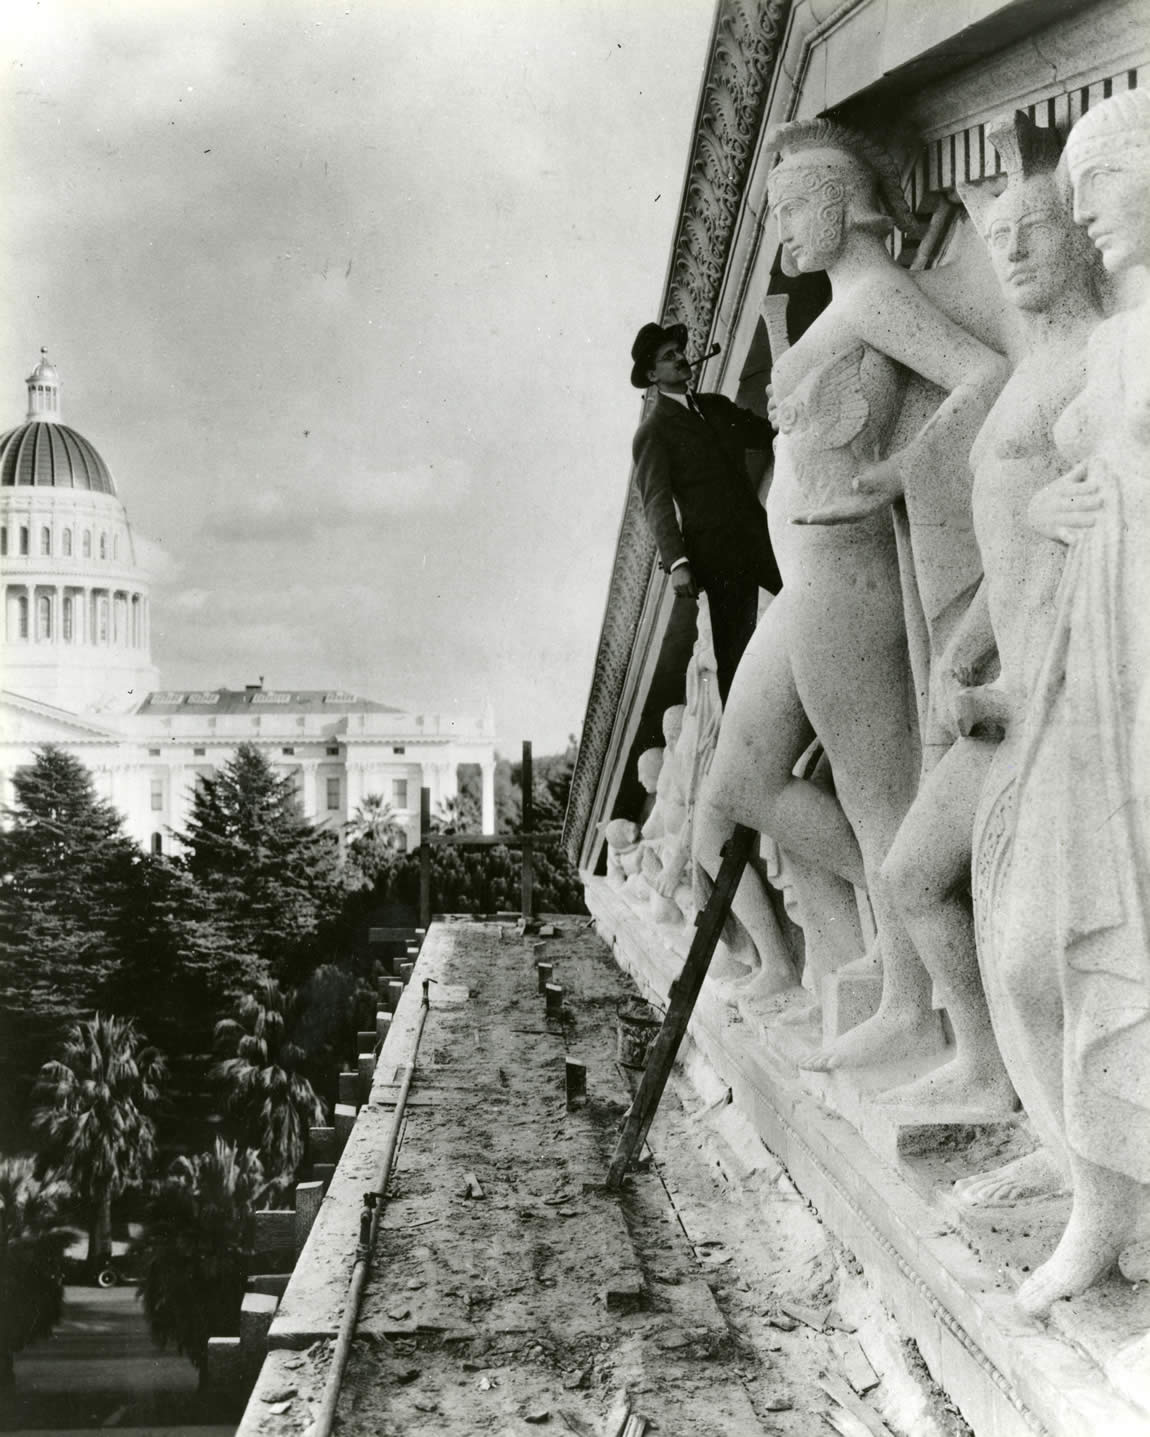 Sculptor Edward Field Sanford, Jr. examining his work on the pediment of the Library and Courts Building, late 1920s